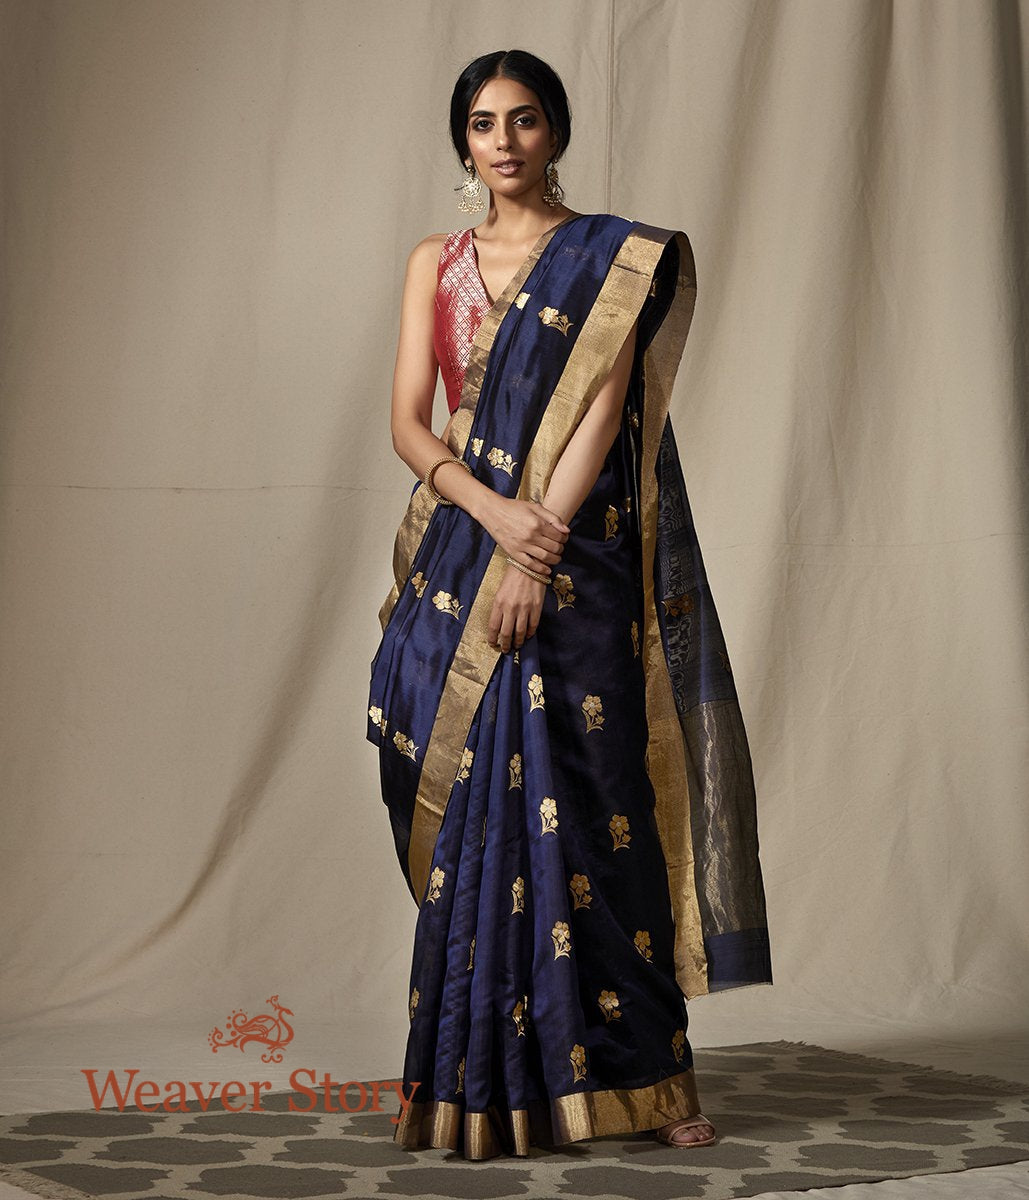 Handwoven Blue Chanderi Silk Saree with Gold Zari Floral Motifs